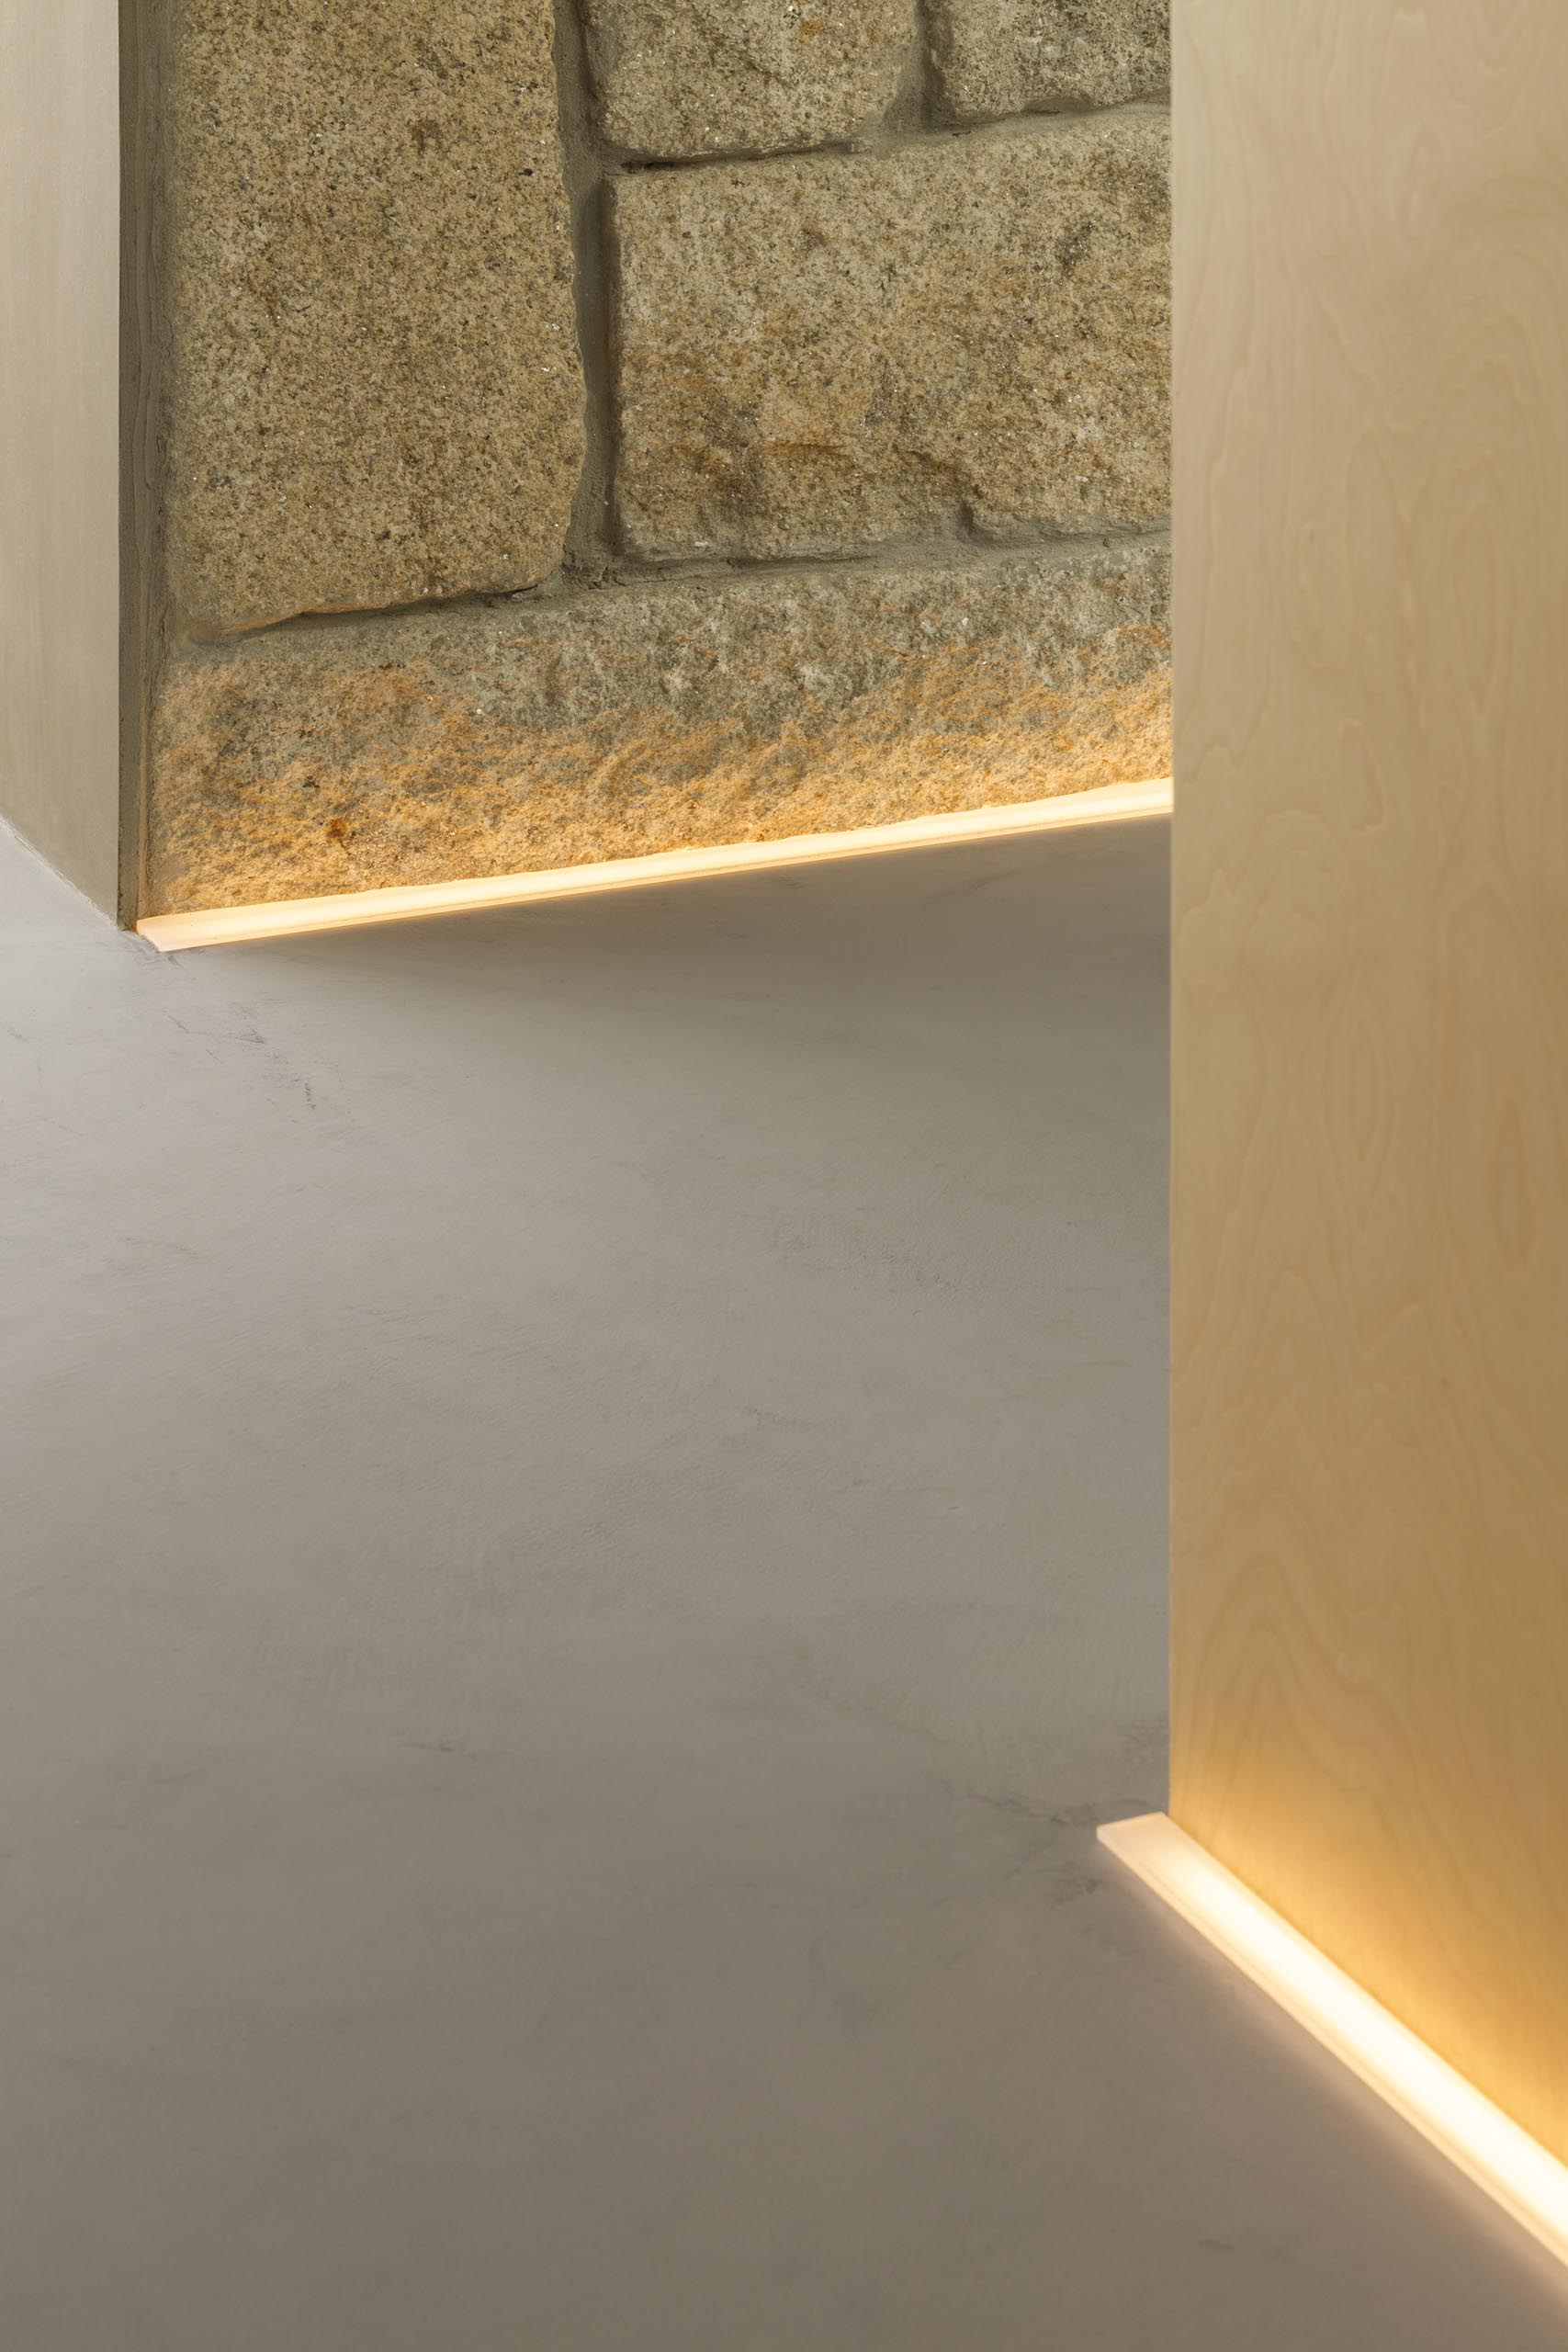 A hallway with stone and wood walls is illuminated by LED lighting on the floor.